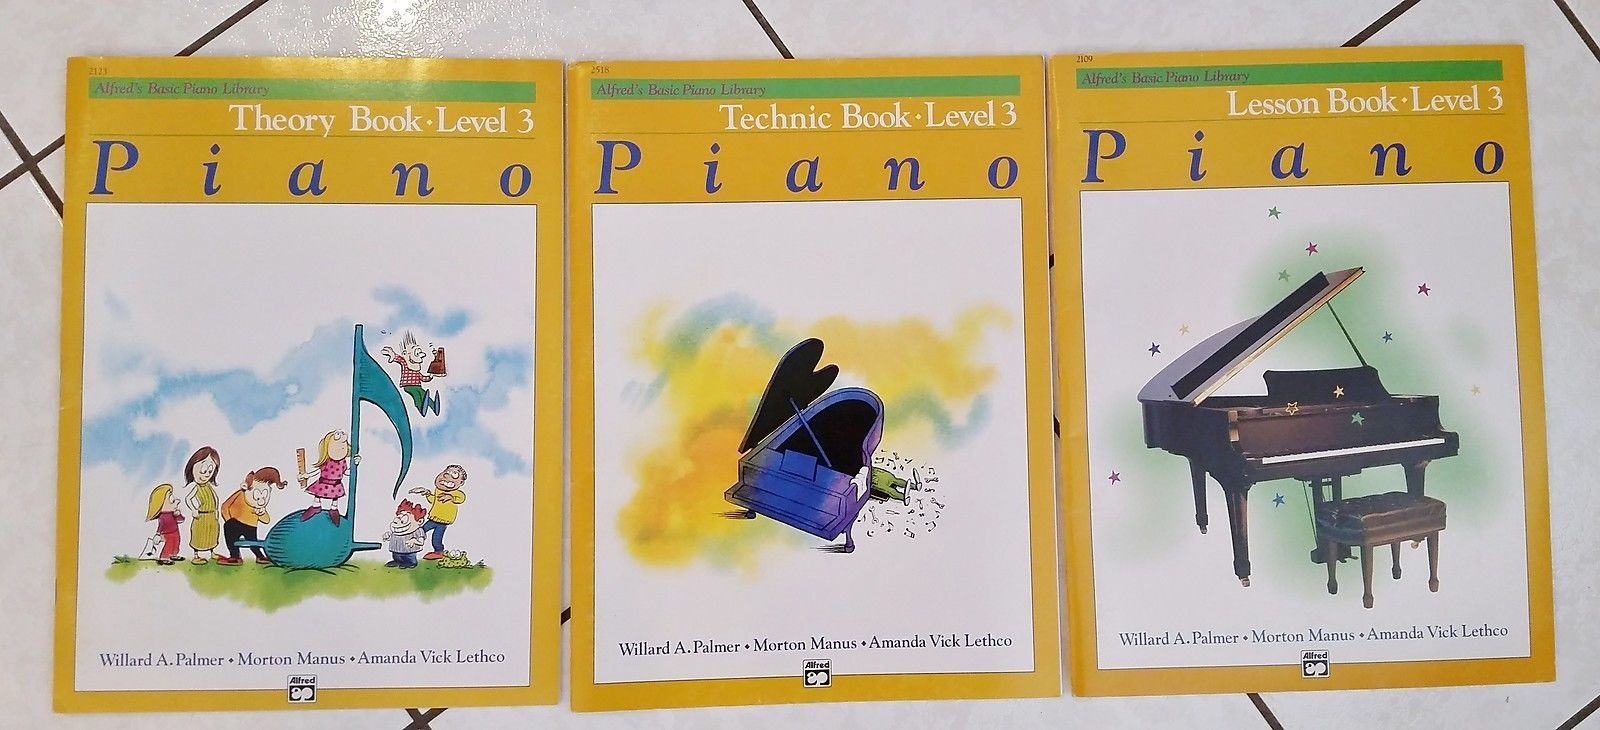 3 Alfred's Basic Piano Library Books Level 3 Theory, Technic & Lesson New/VGUC